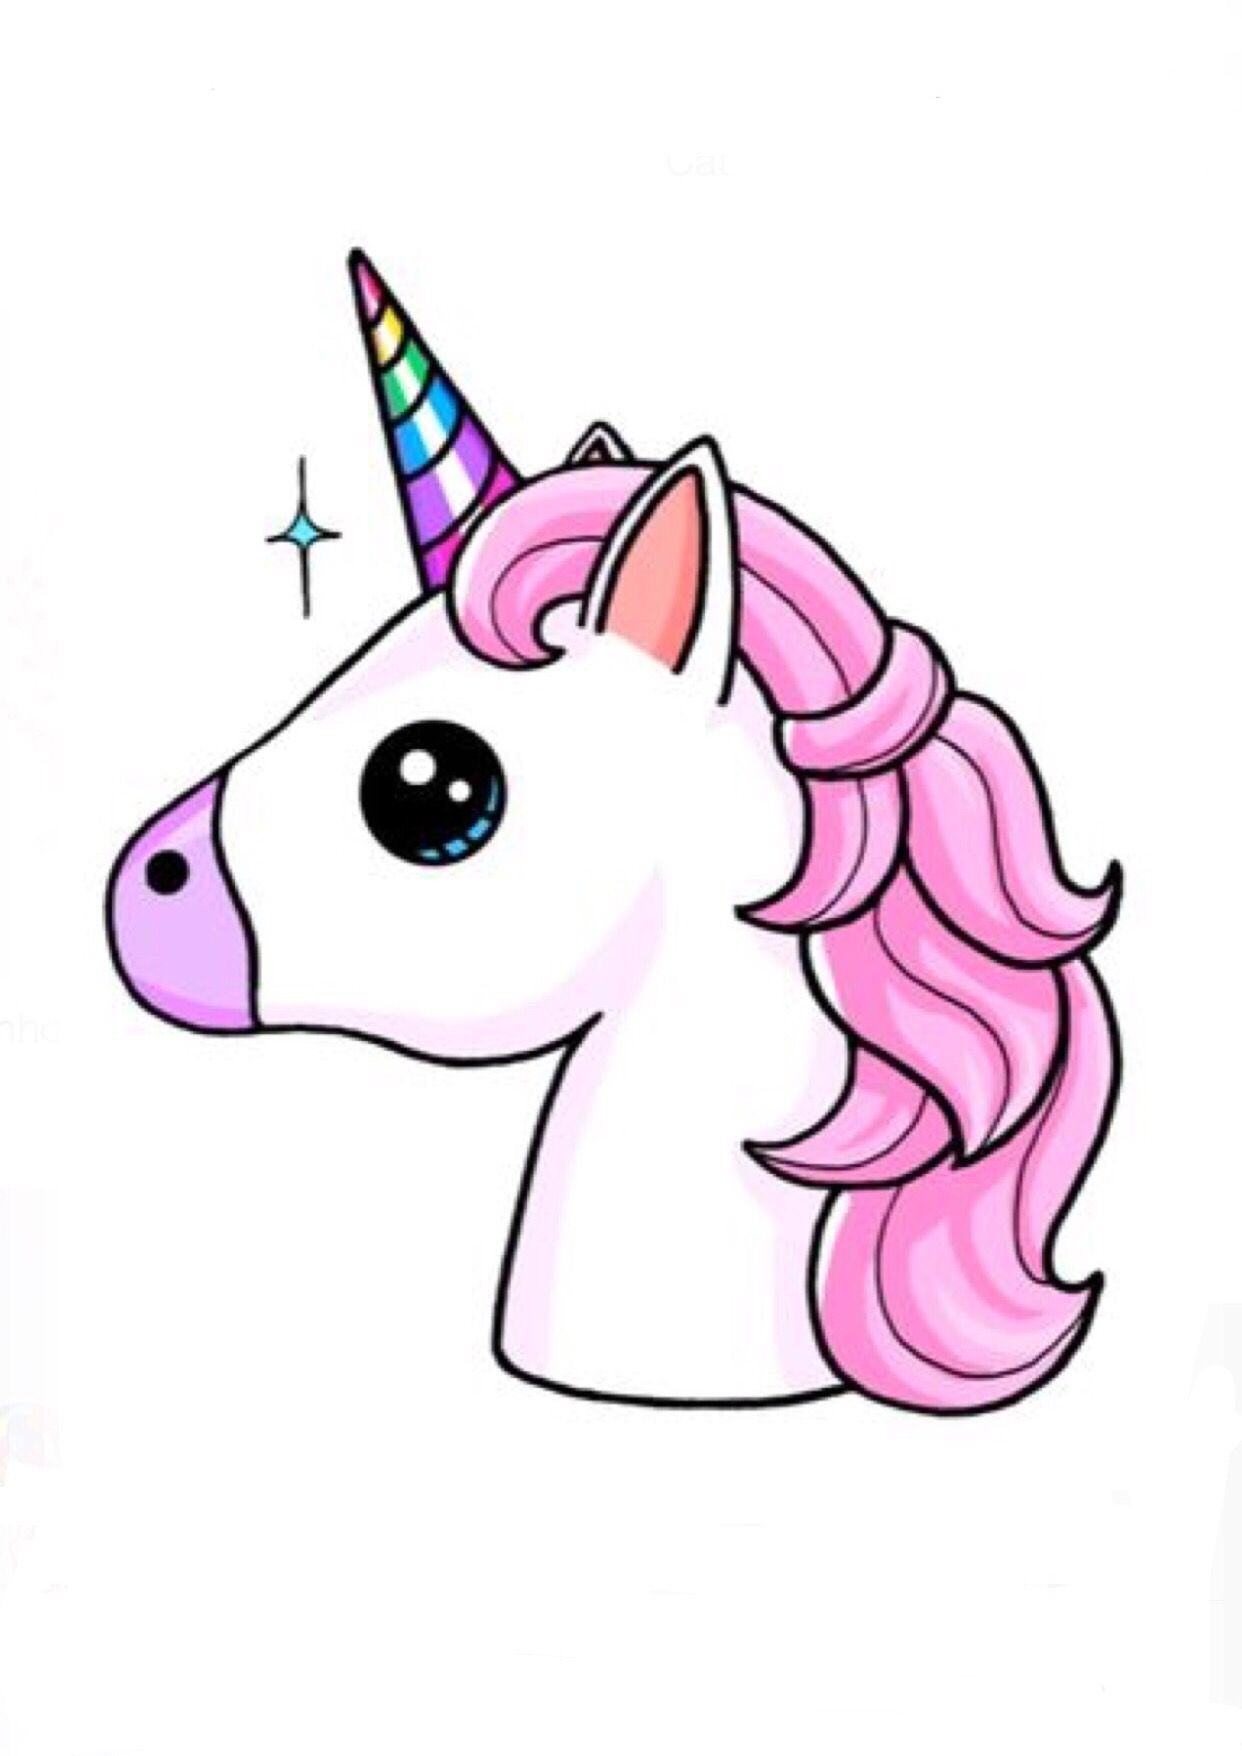 Pin by Carol Bizwell on Emoji in 2019 Unicorn drawing